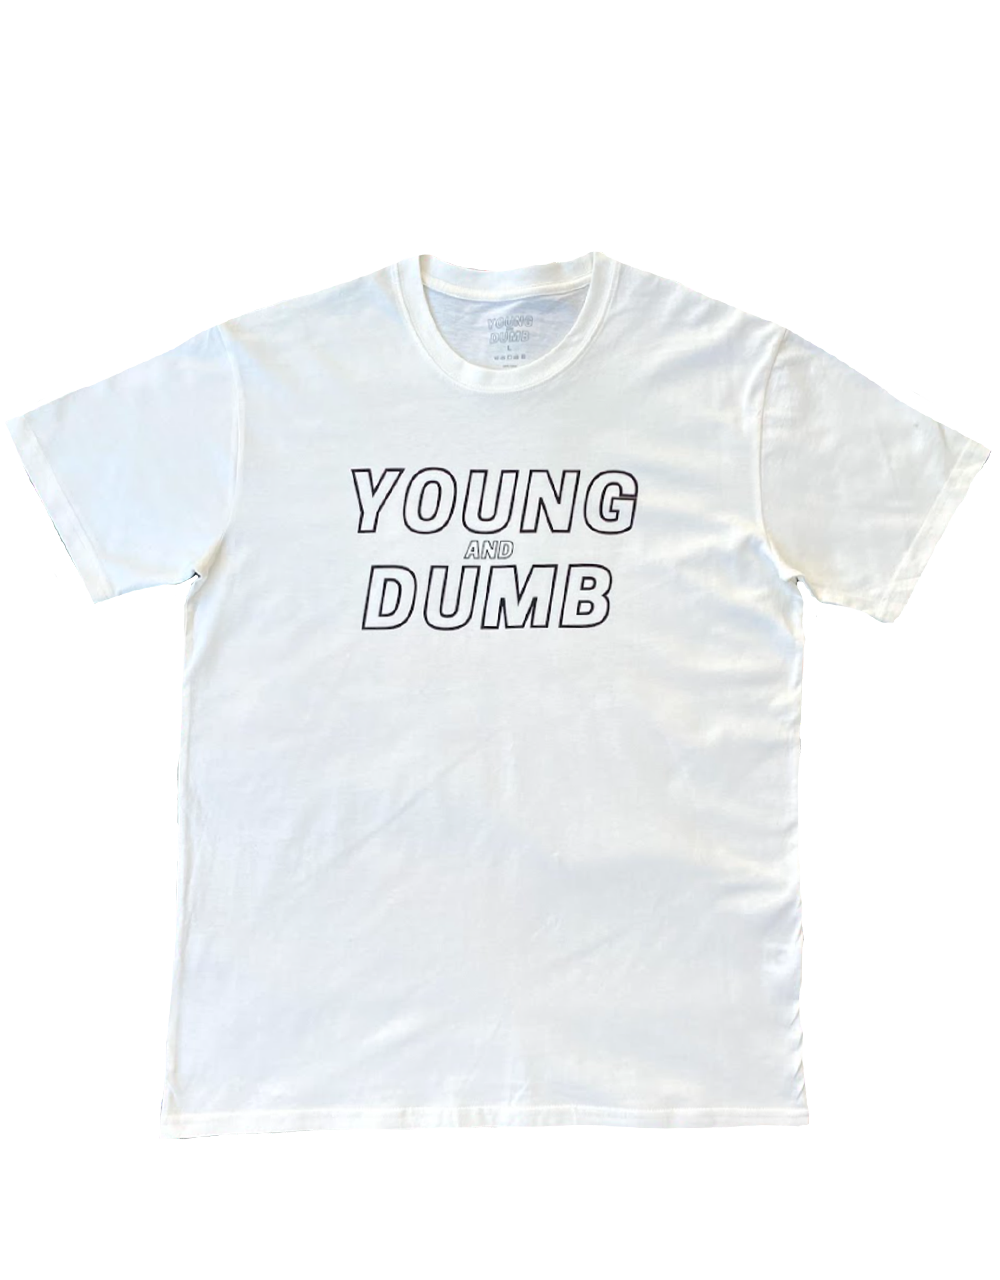 Young and Dumb white tee